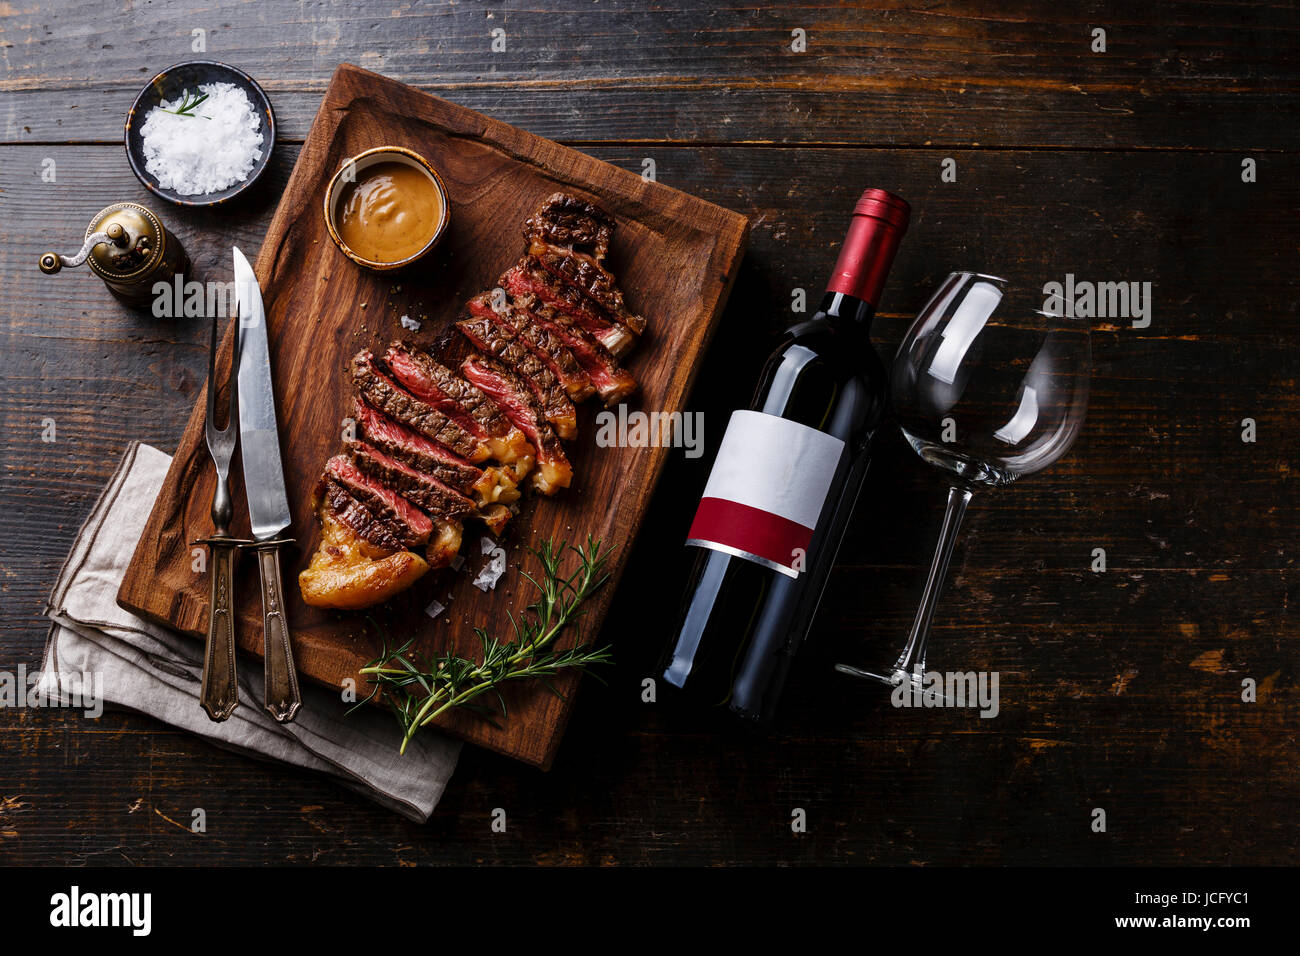 Grilled sliced Steak Striploin with Pepper sauce and bottle of Red wine on wooden background - Stock Image